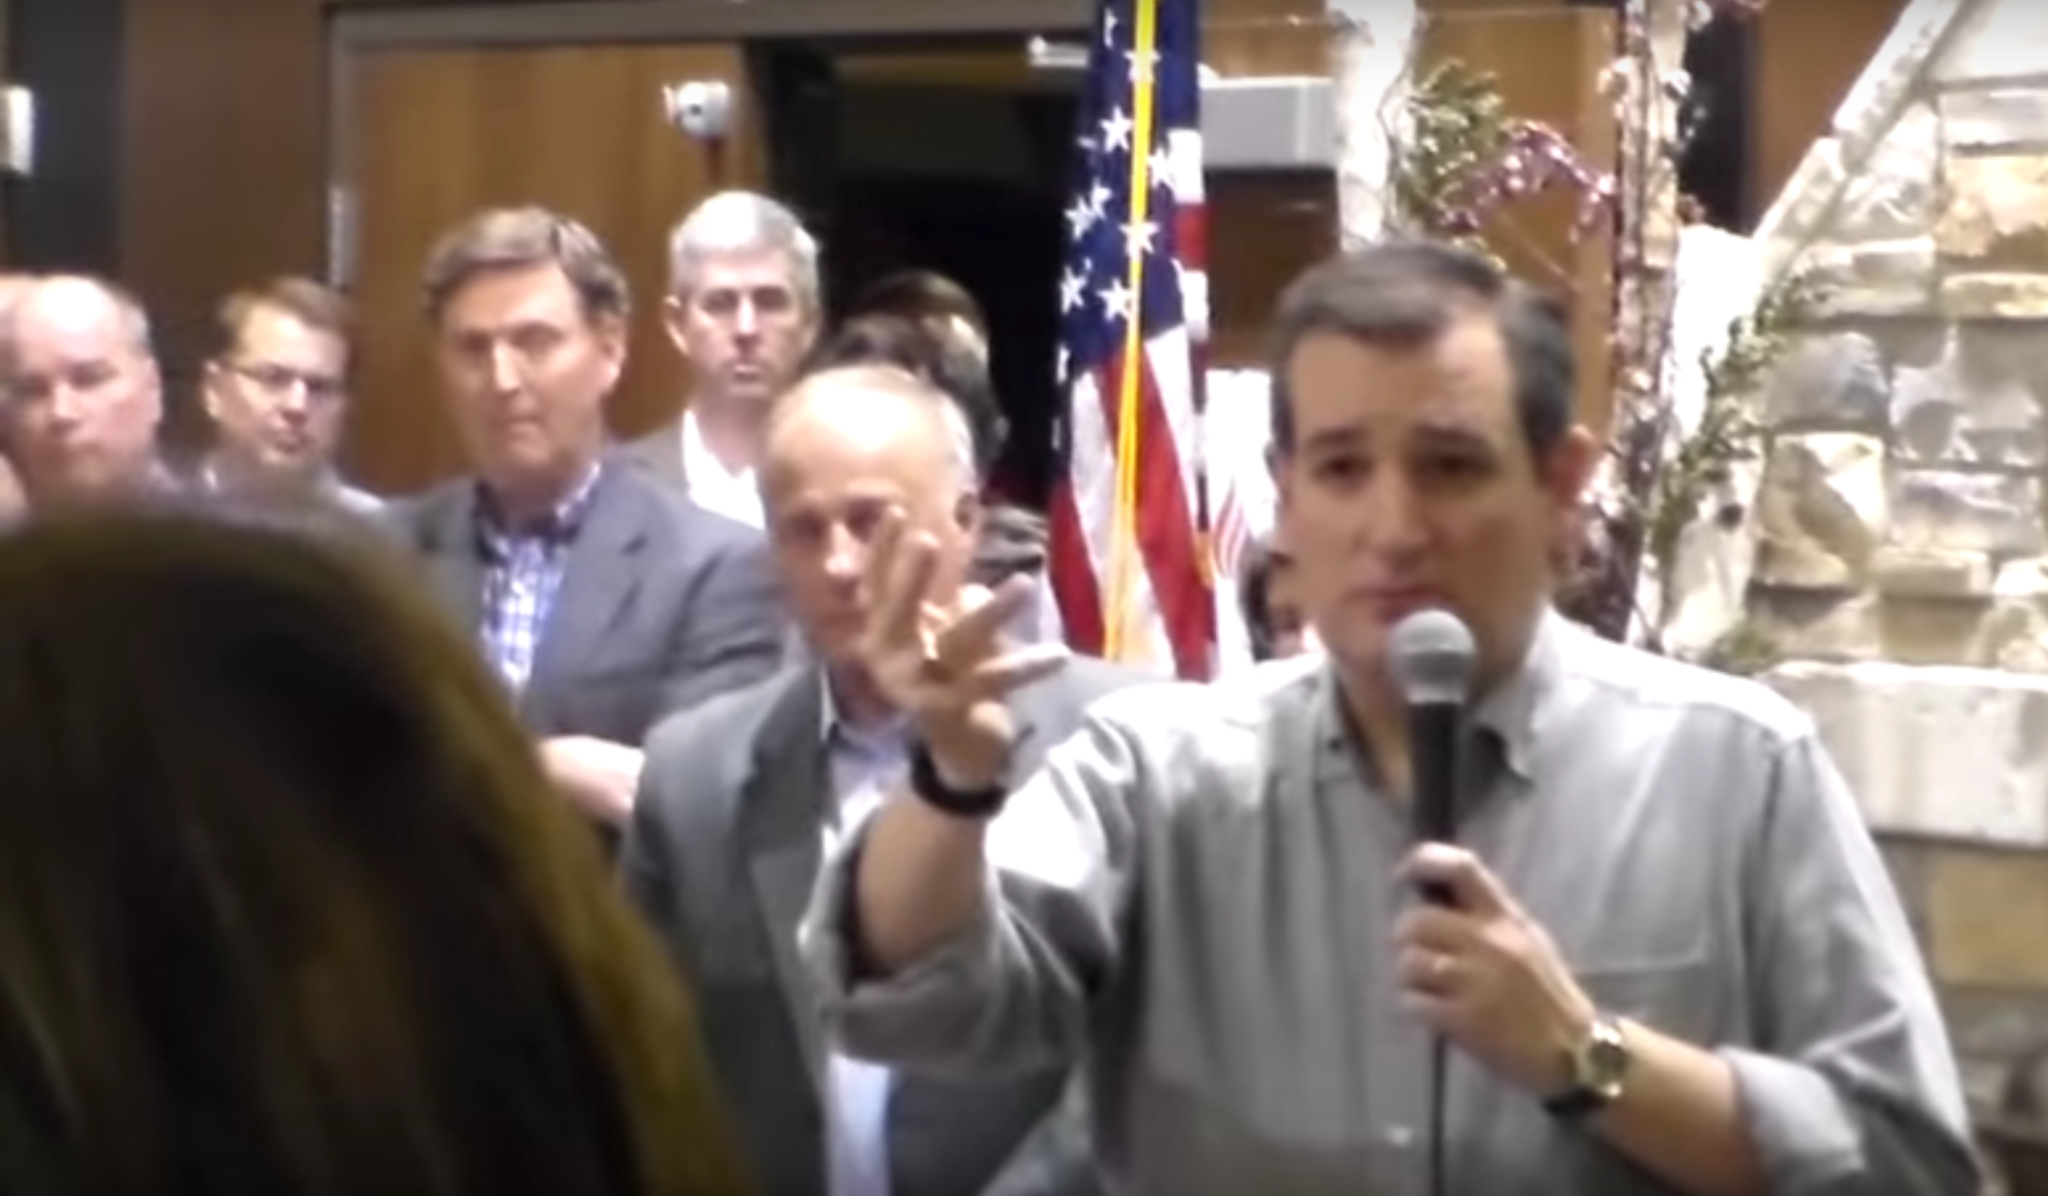 Cruz tells illegal immigrant as President, he would deport her (VIDEO)